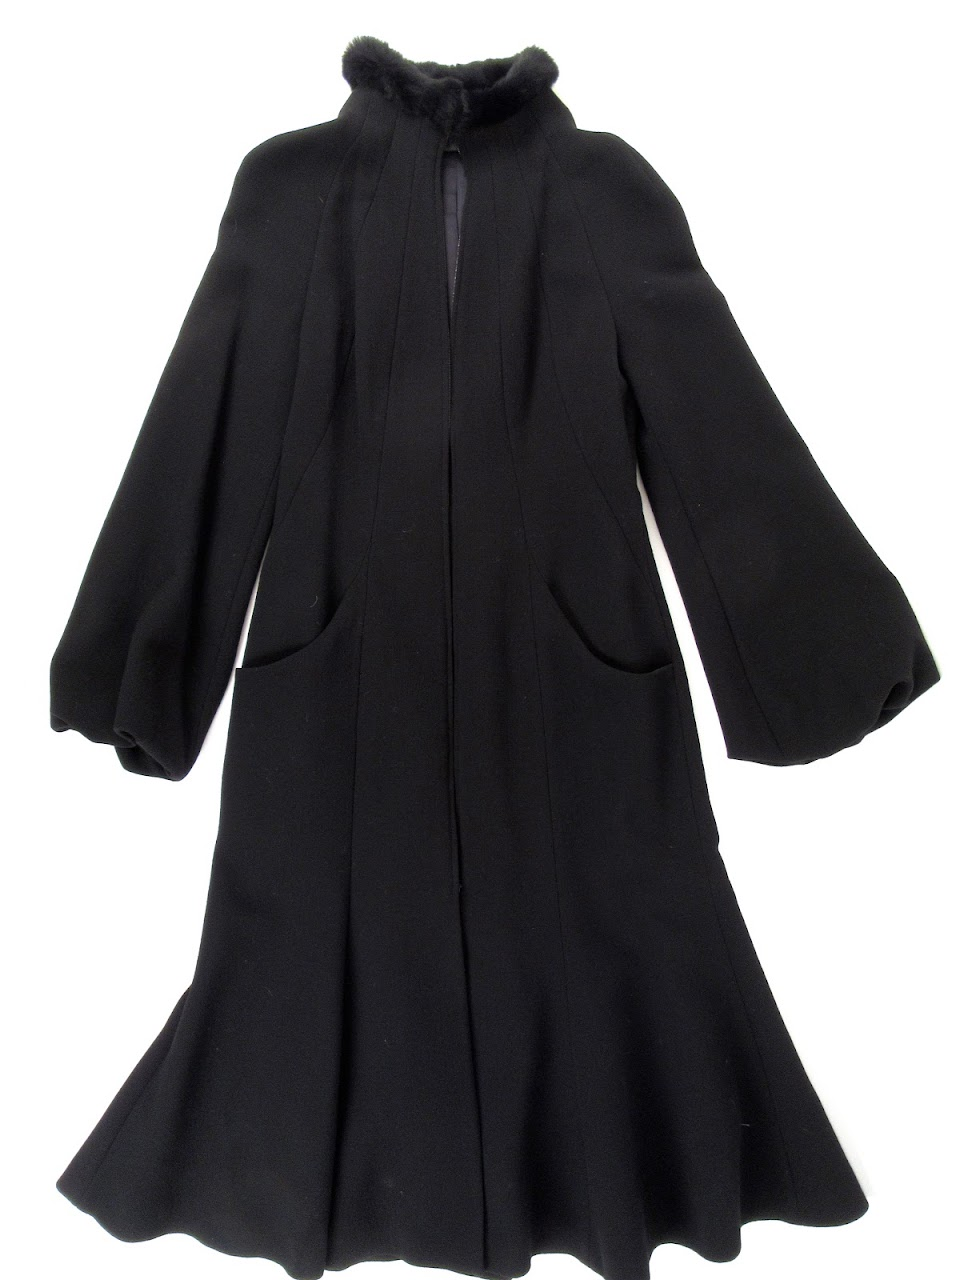 Alexander McQueen Full Length Coat